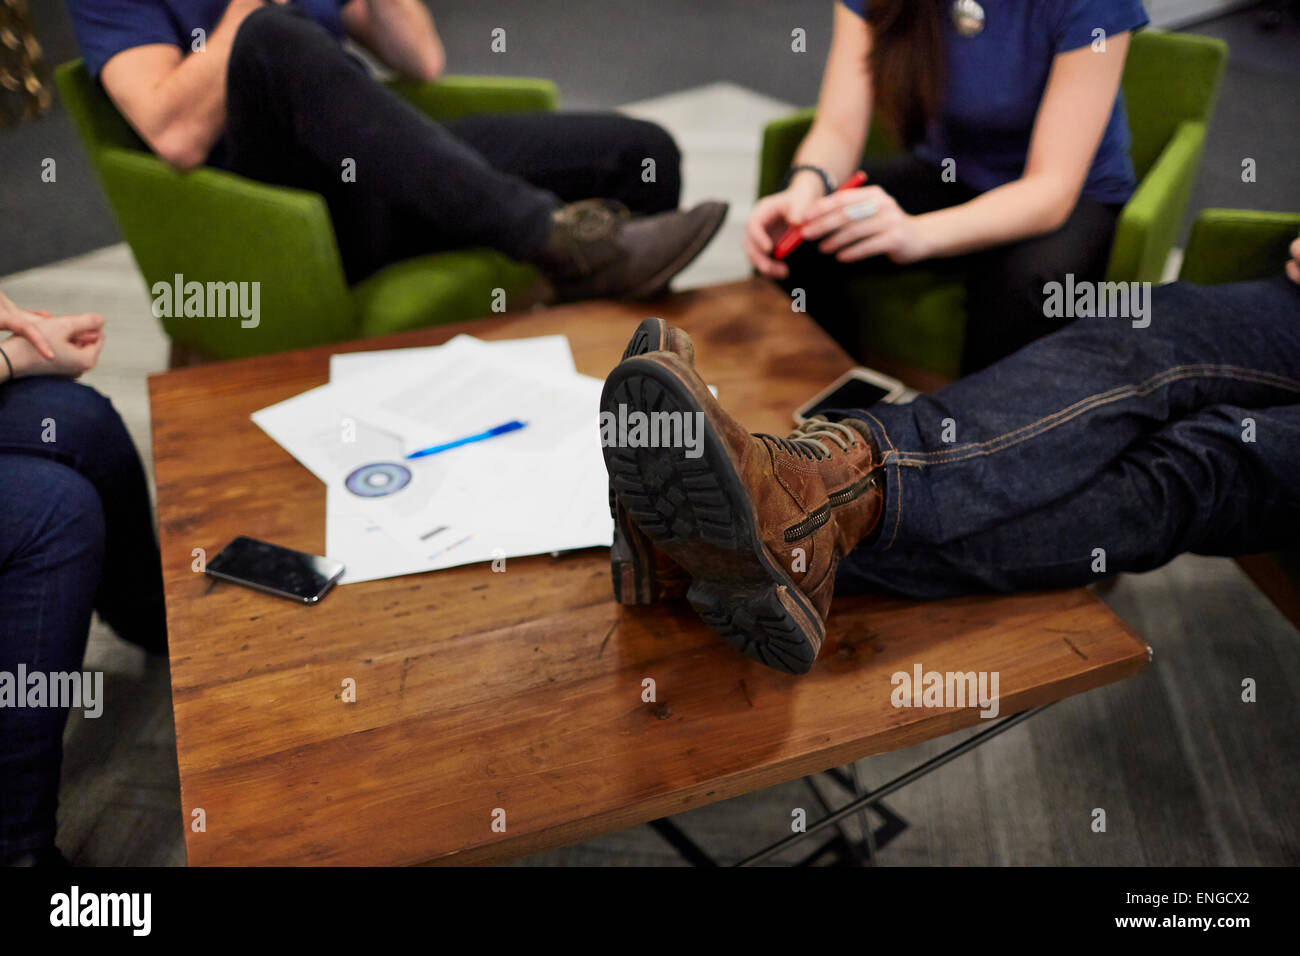 Overhead view of a meeting of four people seated around a low table. - Stock Image